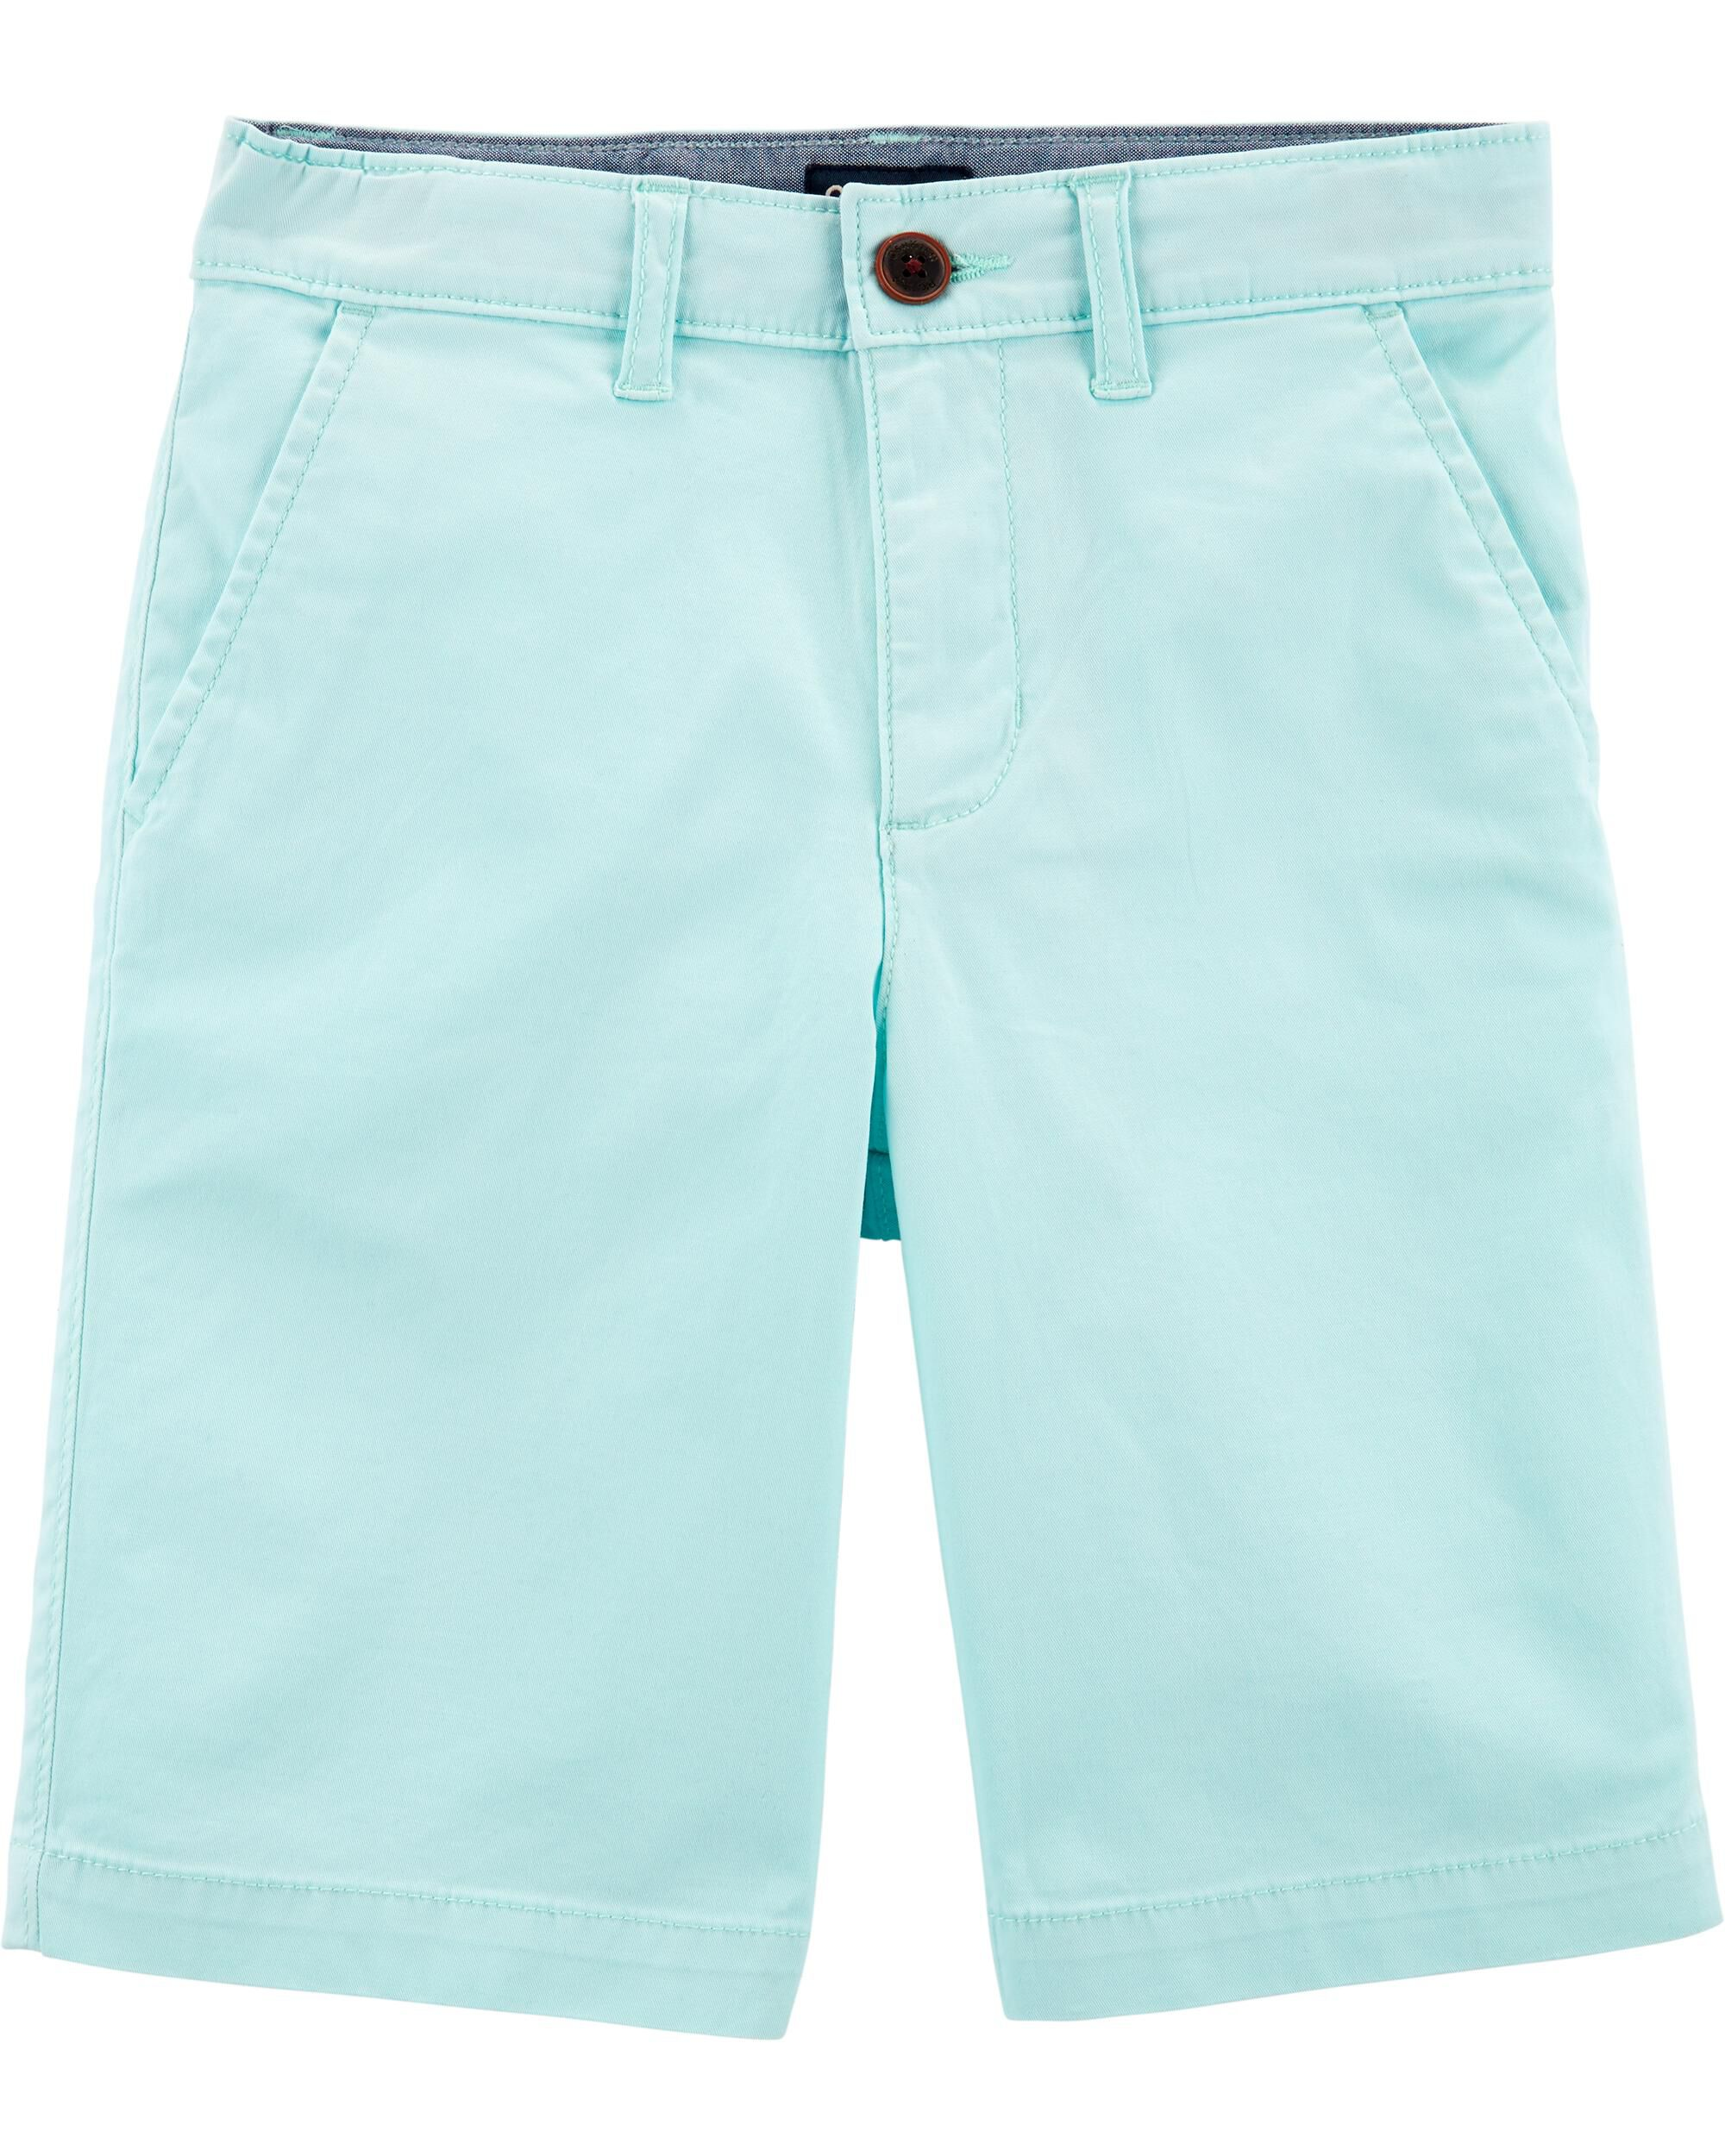 *Clearance*  Stretch Flat Front Shorts